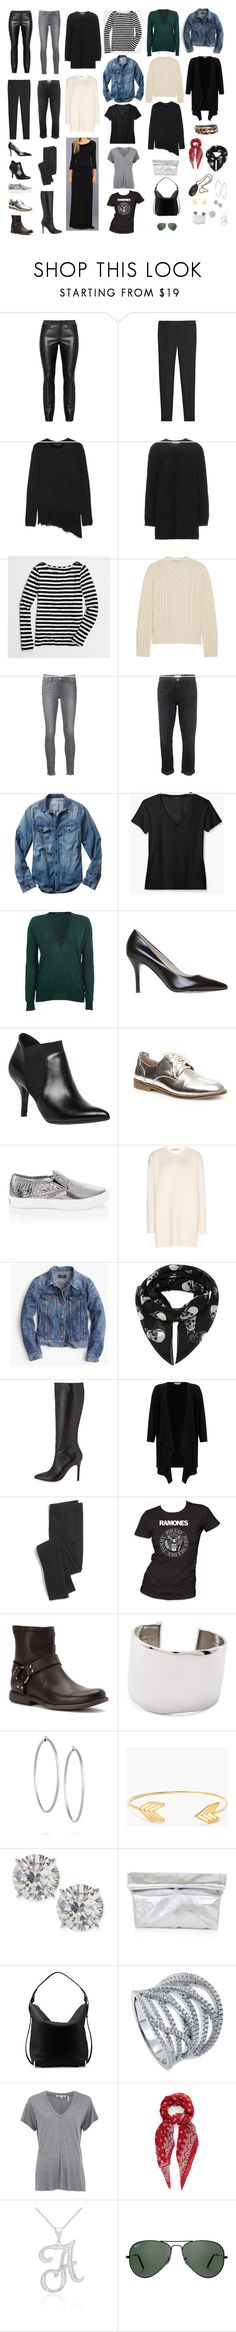 My Current Closet - Capsule Wardrobe by woxy on Polyvore featuring Valentino, Windsmoor, J.Crew, Theory, Frame, Proenza Schouler, Helmut Lang, Yves Saint Laurent, White House Black Market and Current/Elliott